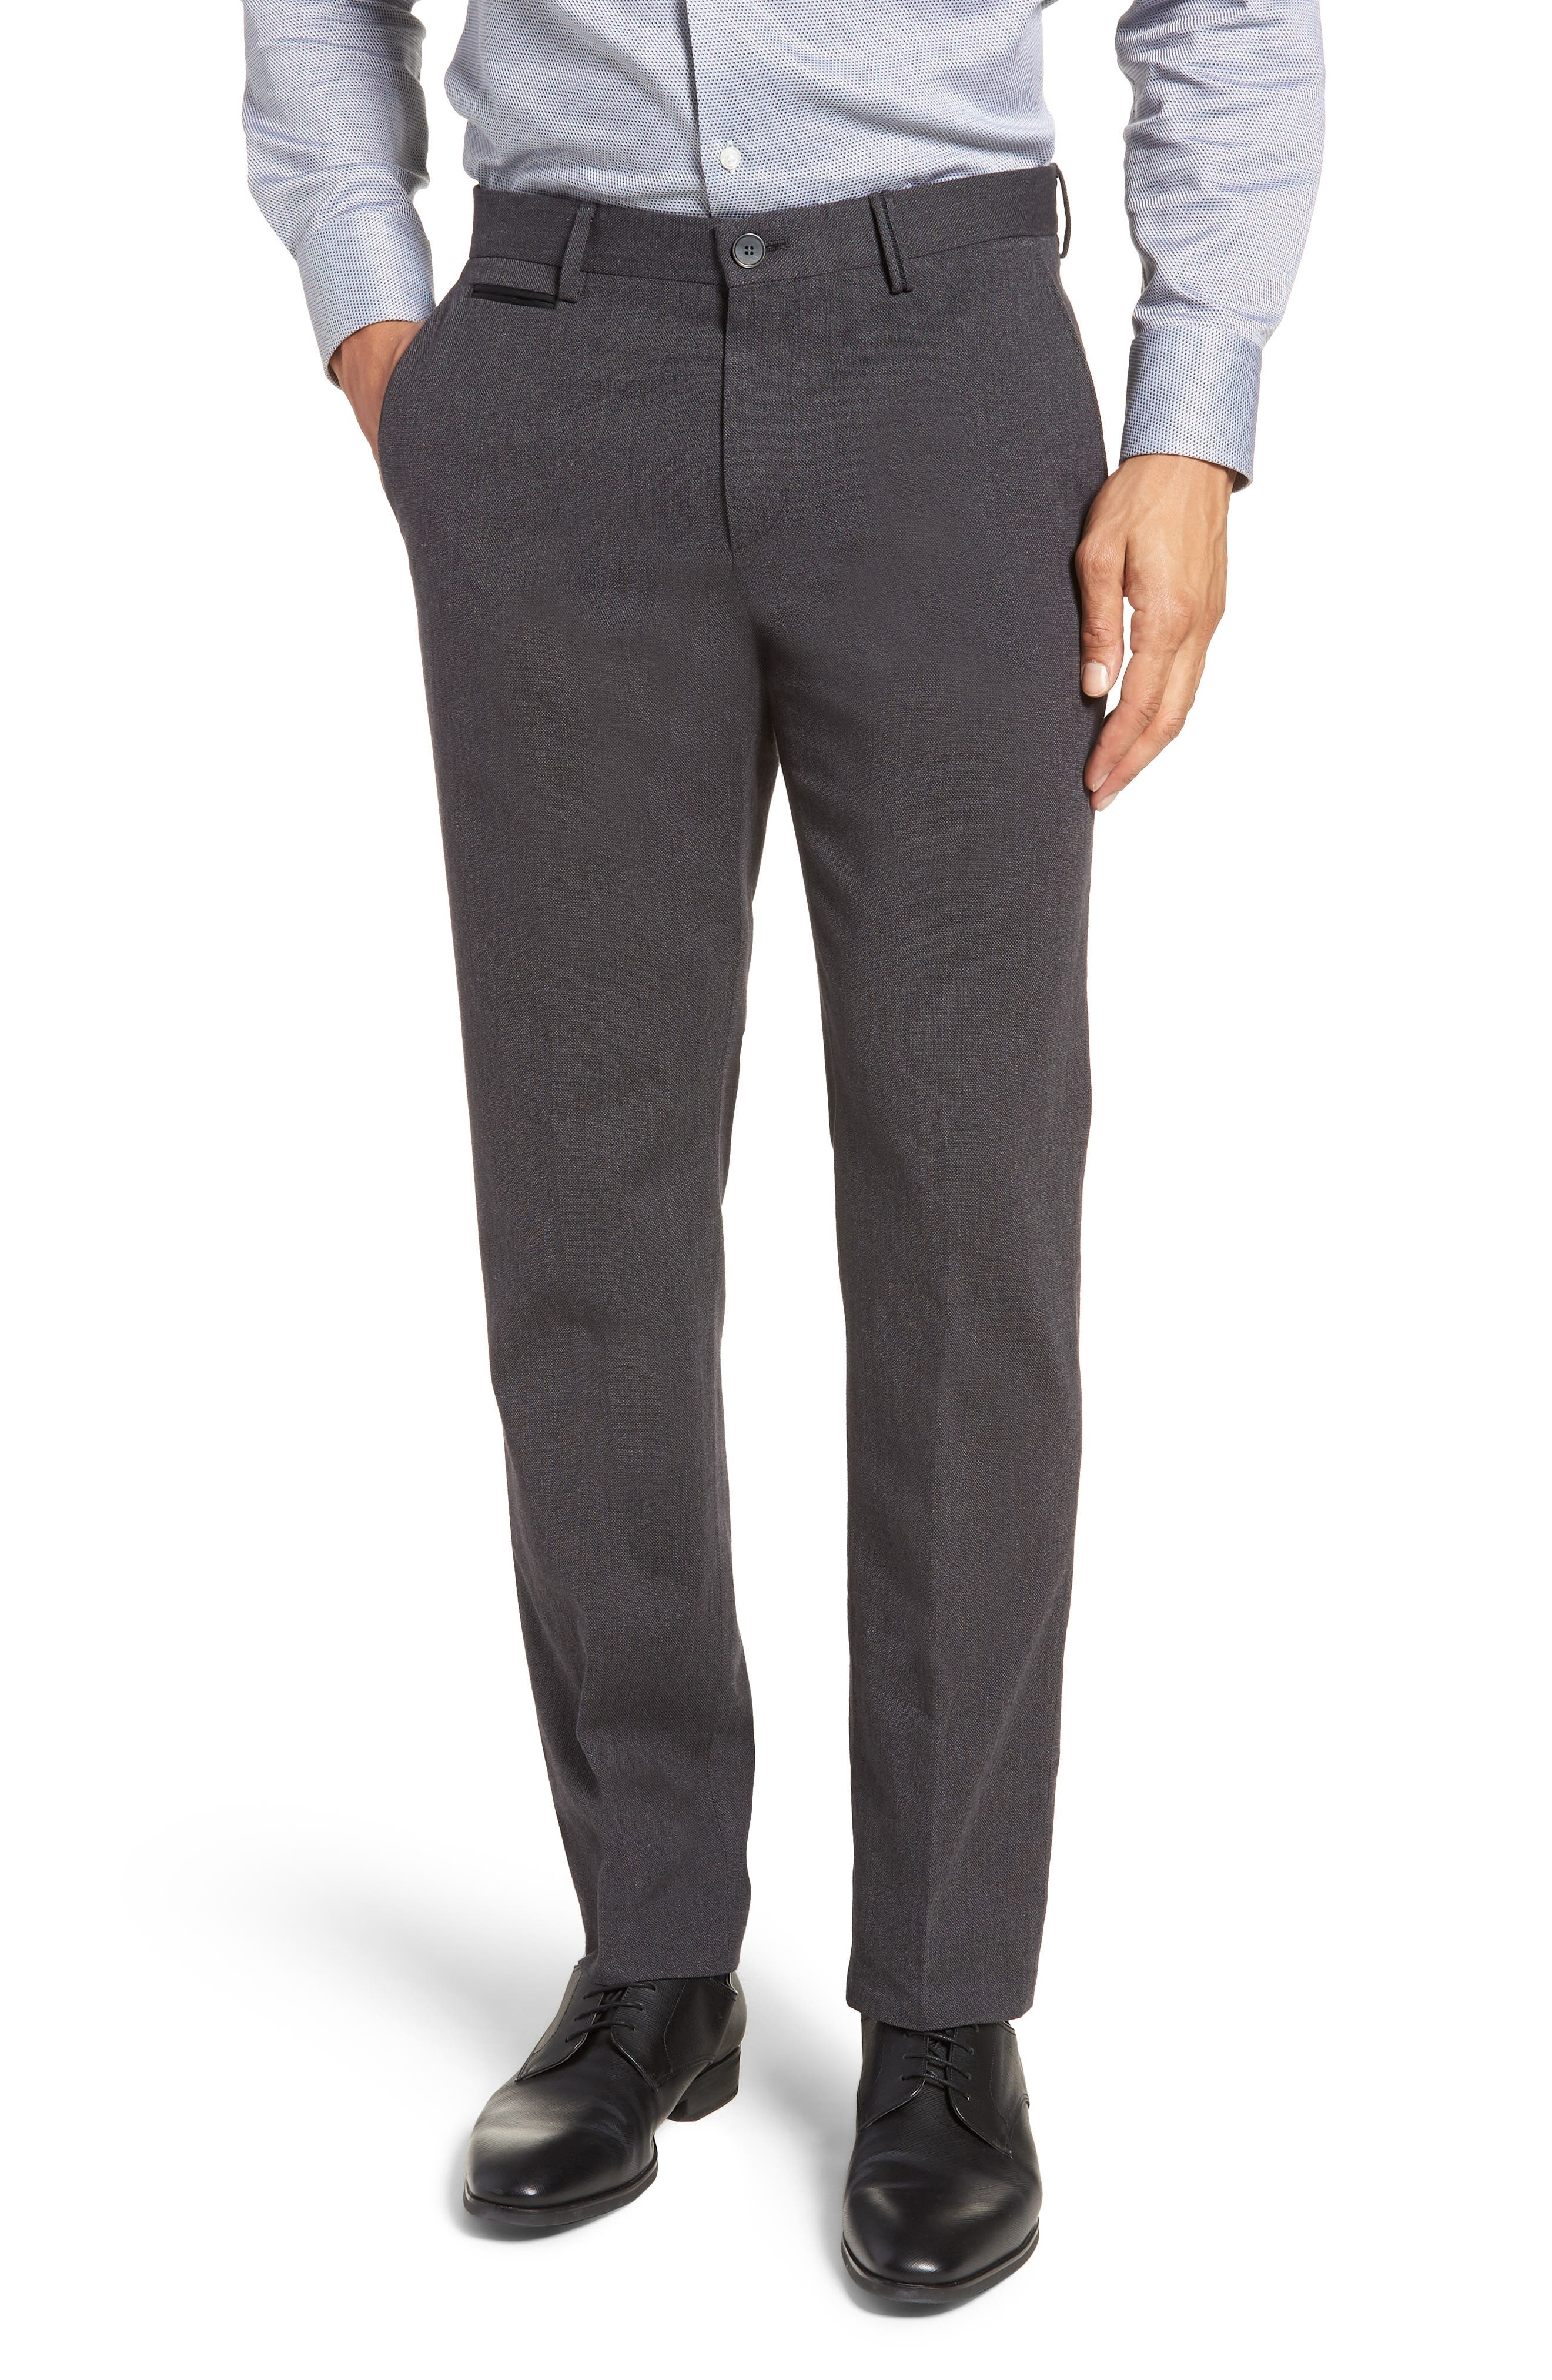 Batho Flat Front Solid Cotton Trousers,                         Main,                         color, MEDIUM GREY